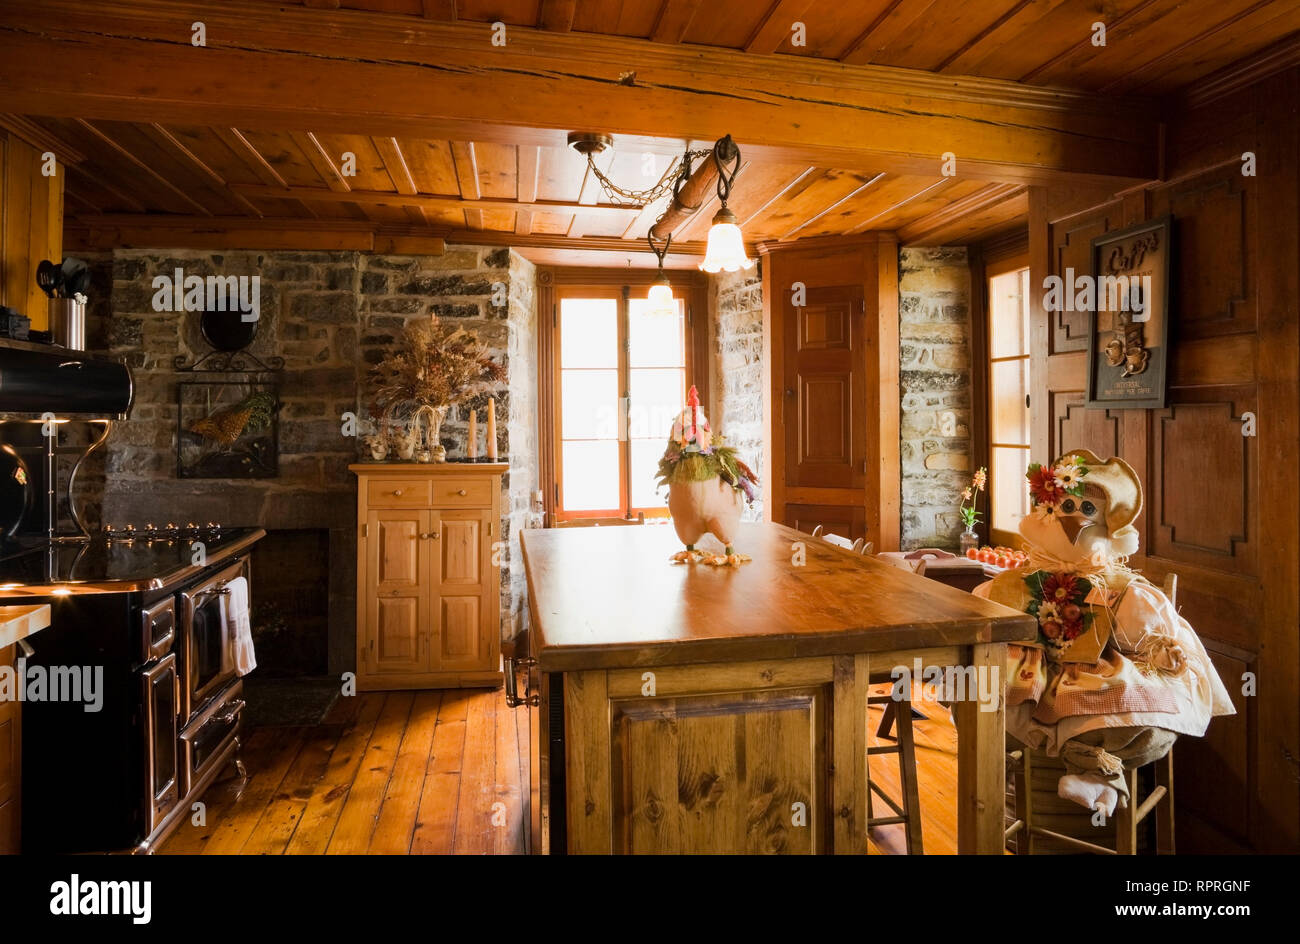 Partial view of the kitchen with an island containing the dishwasher in an old circa 1750 Canadiana fieldstone home - Stock Image